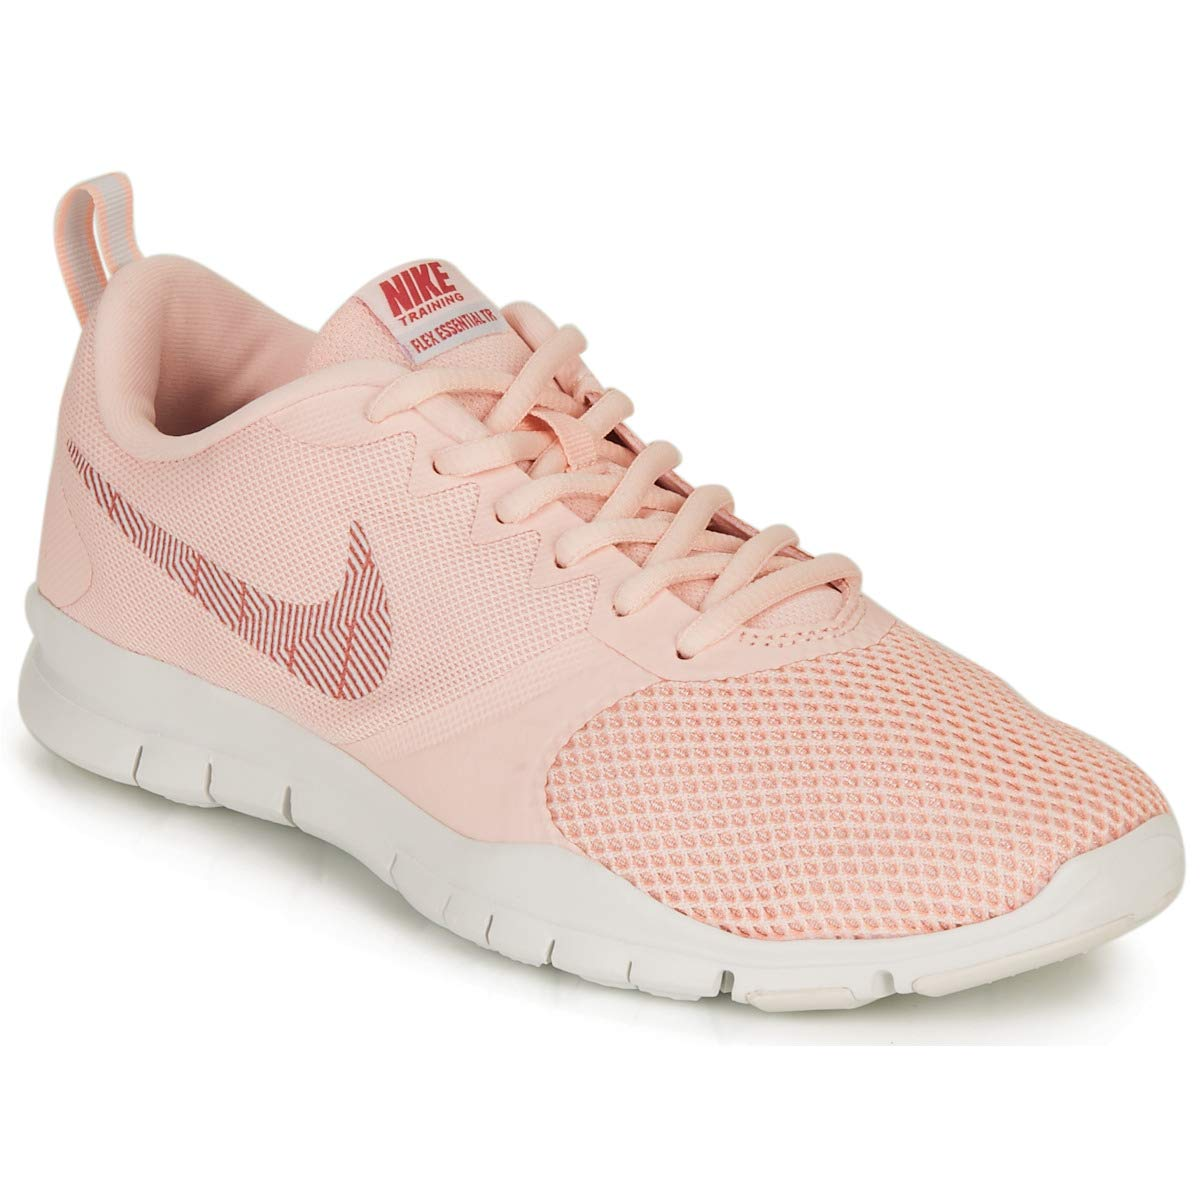 100% genuine outlet store sale Nike Women's Flex Essential Training Shoe Track & Field ...